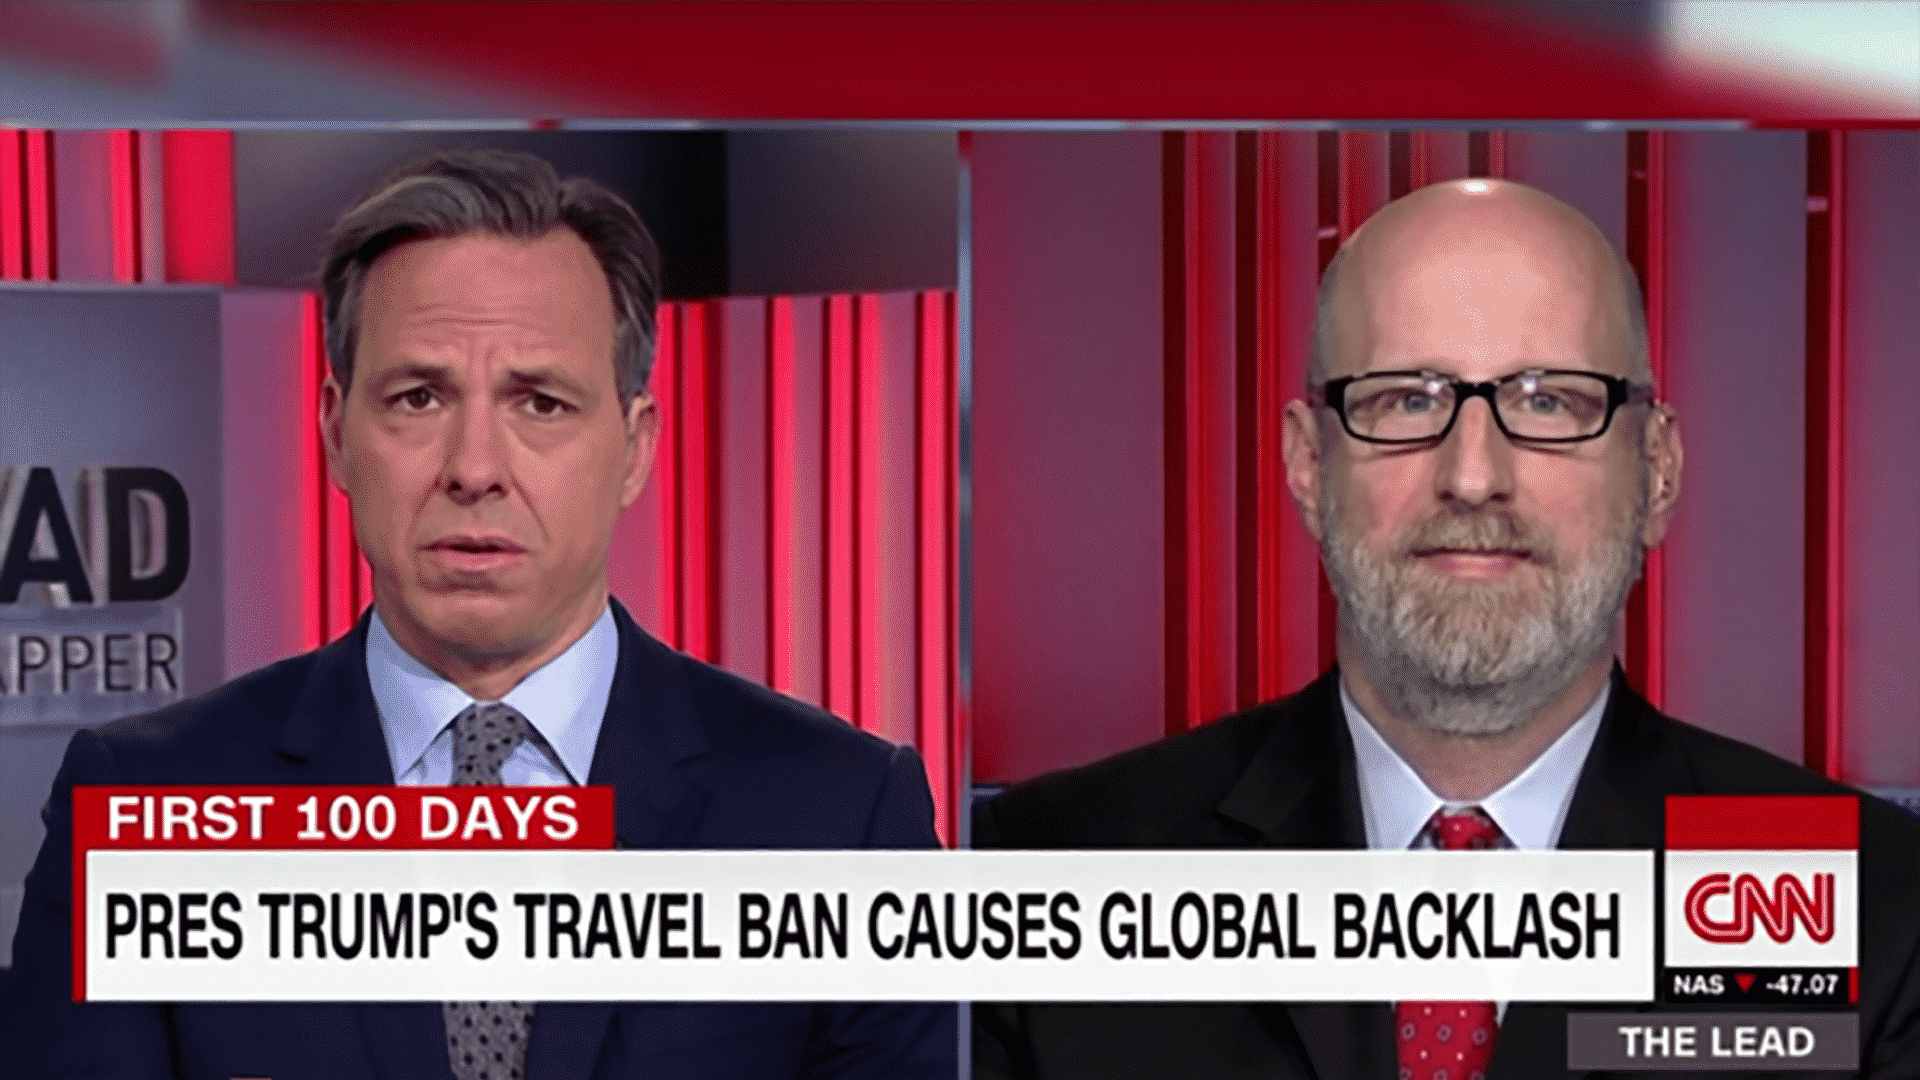 David French on CNN